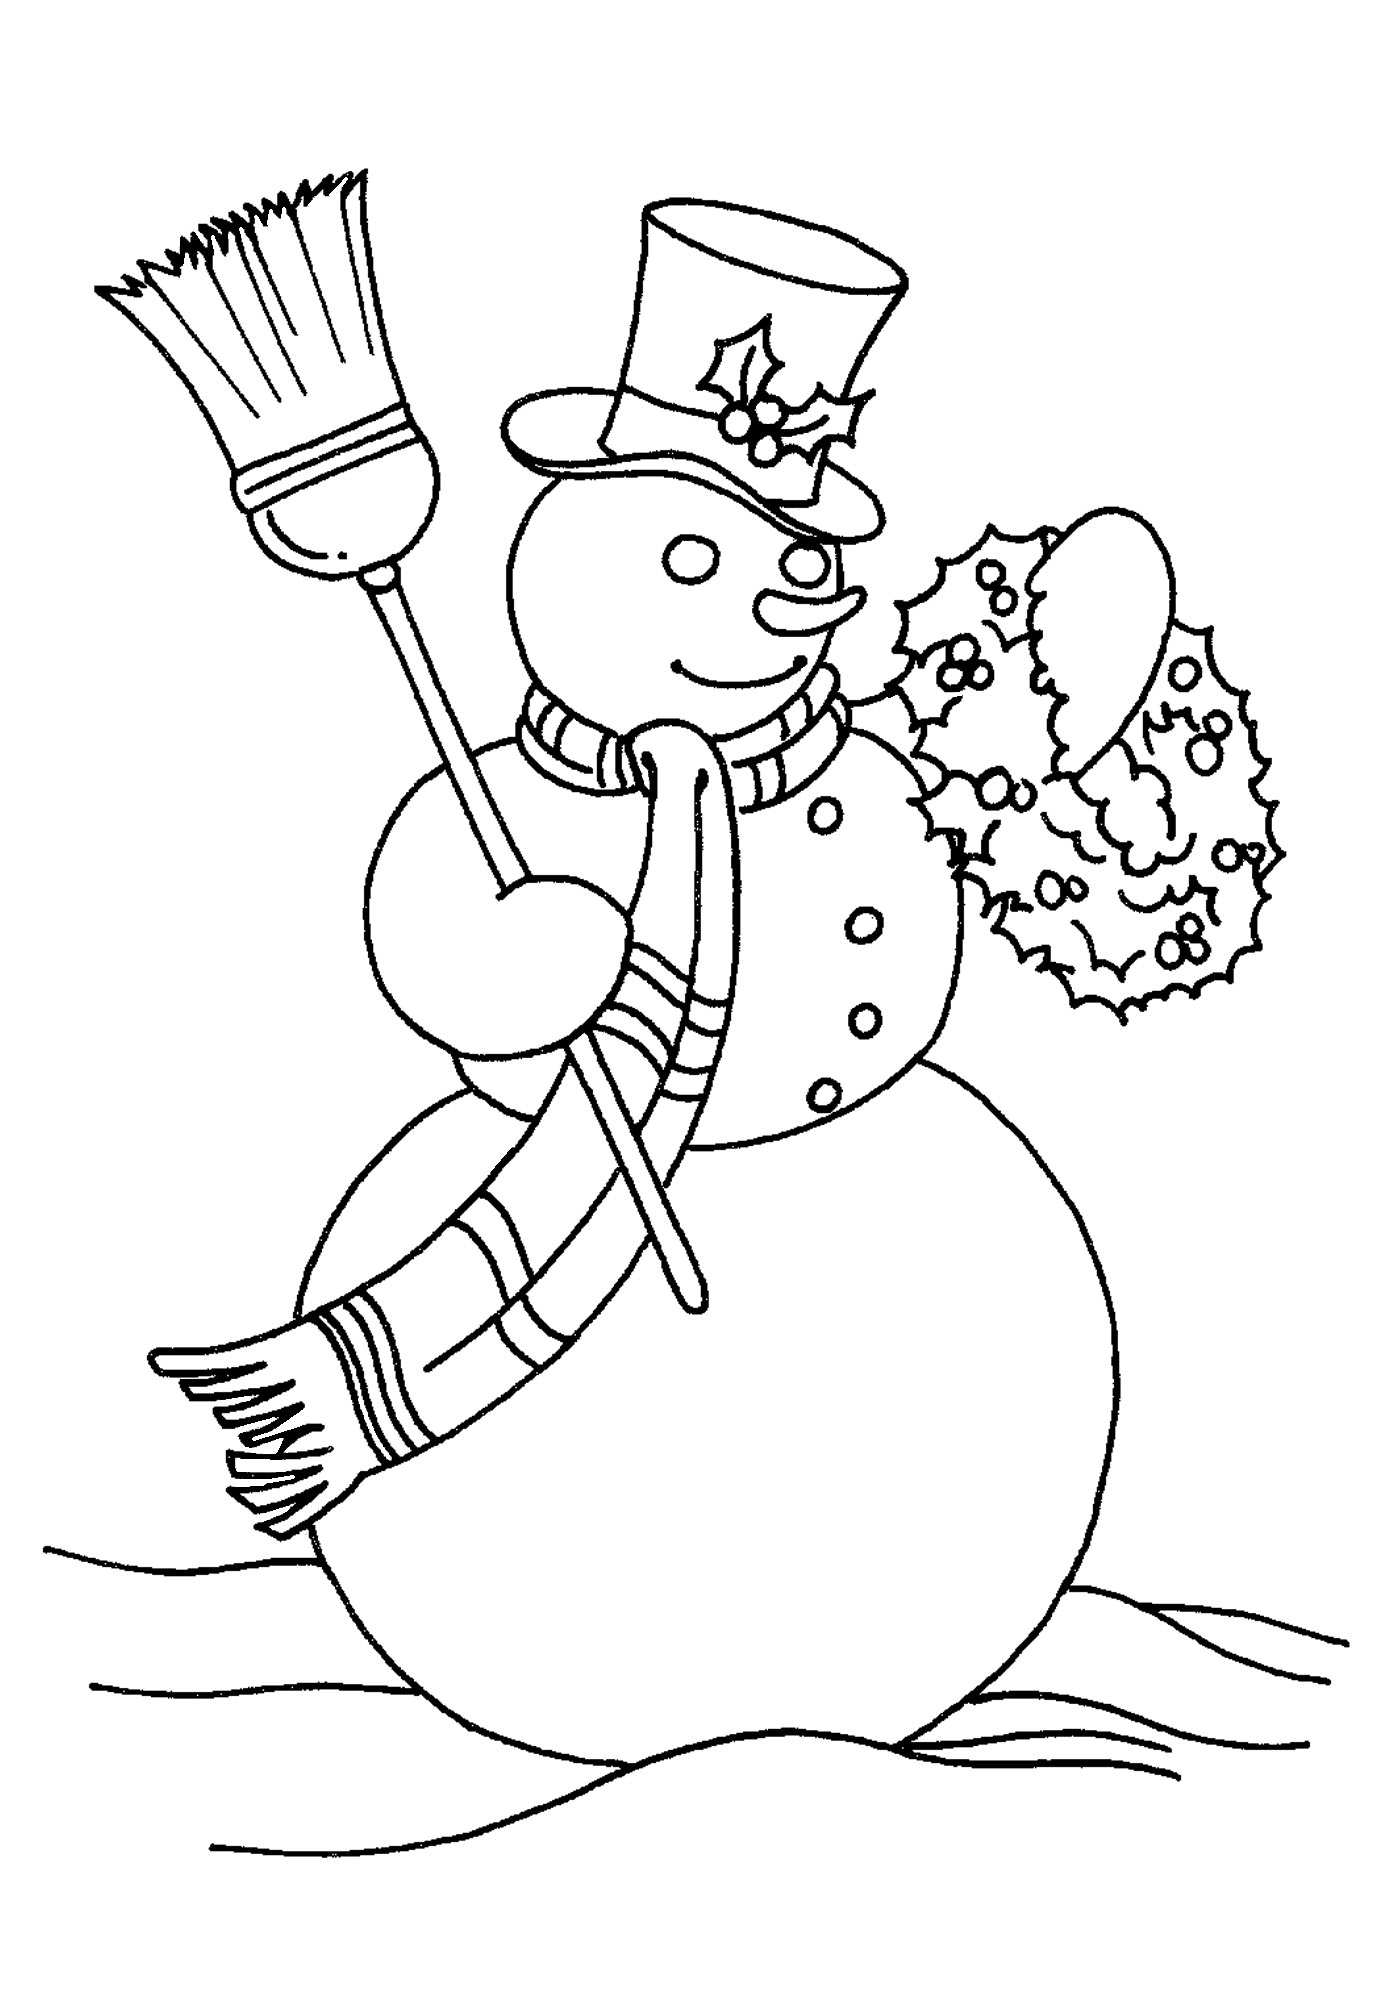 Snowman Coloring Pages Christmas